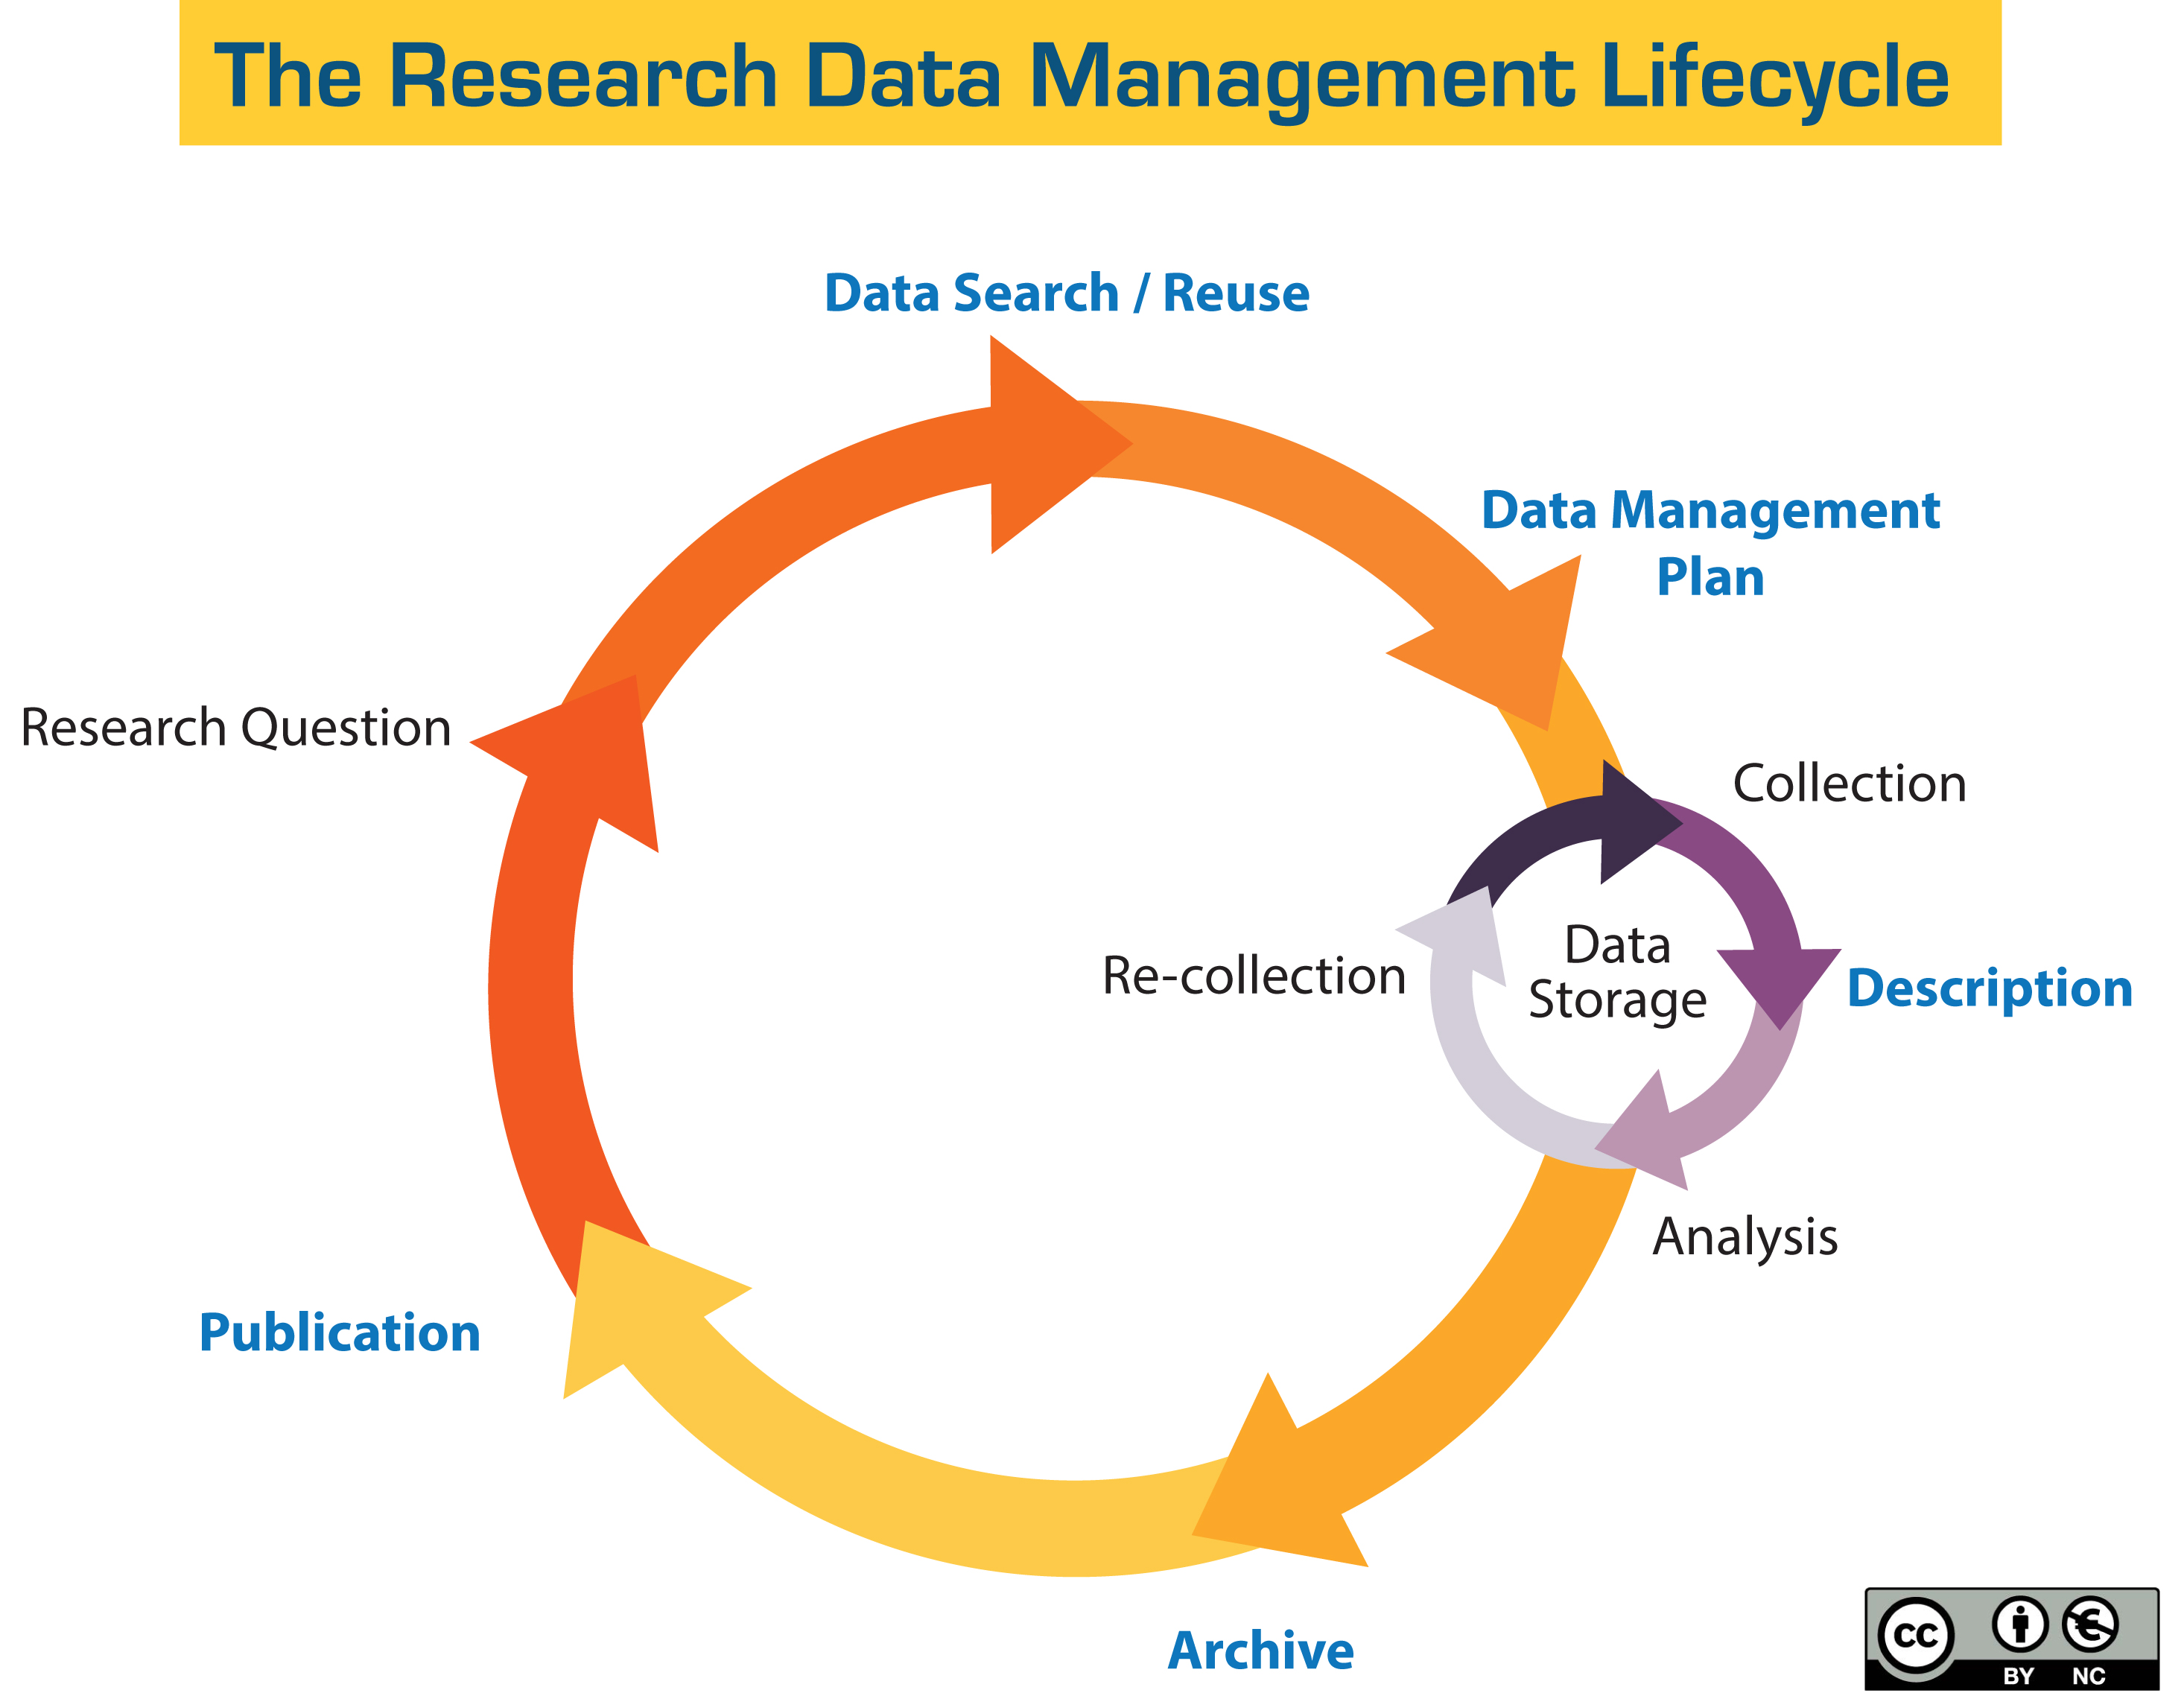 Model of the research data management lifecycle